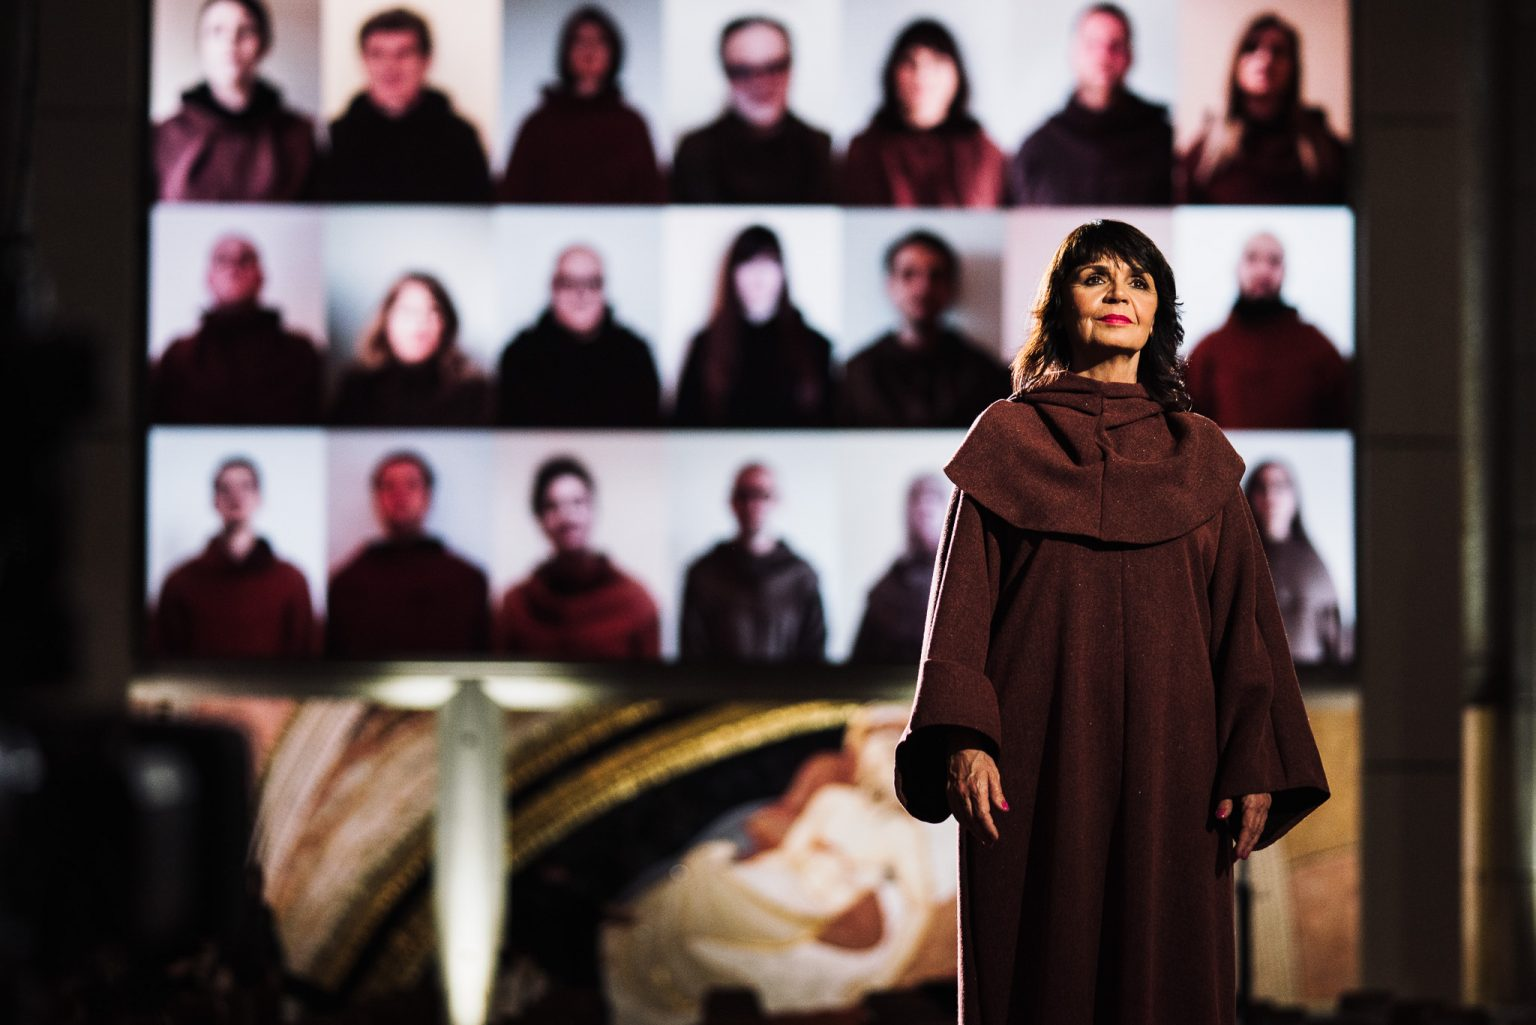 In the foreground, a female performer in a modest dress reminiscent of a nun's frock; in the background, a screen showing members of the choir